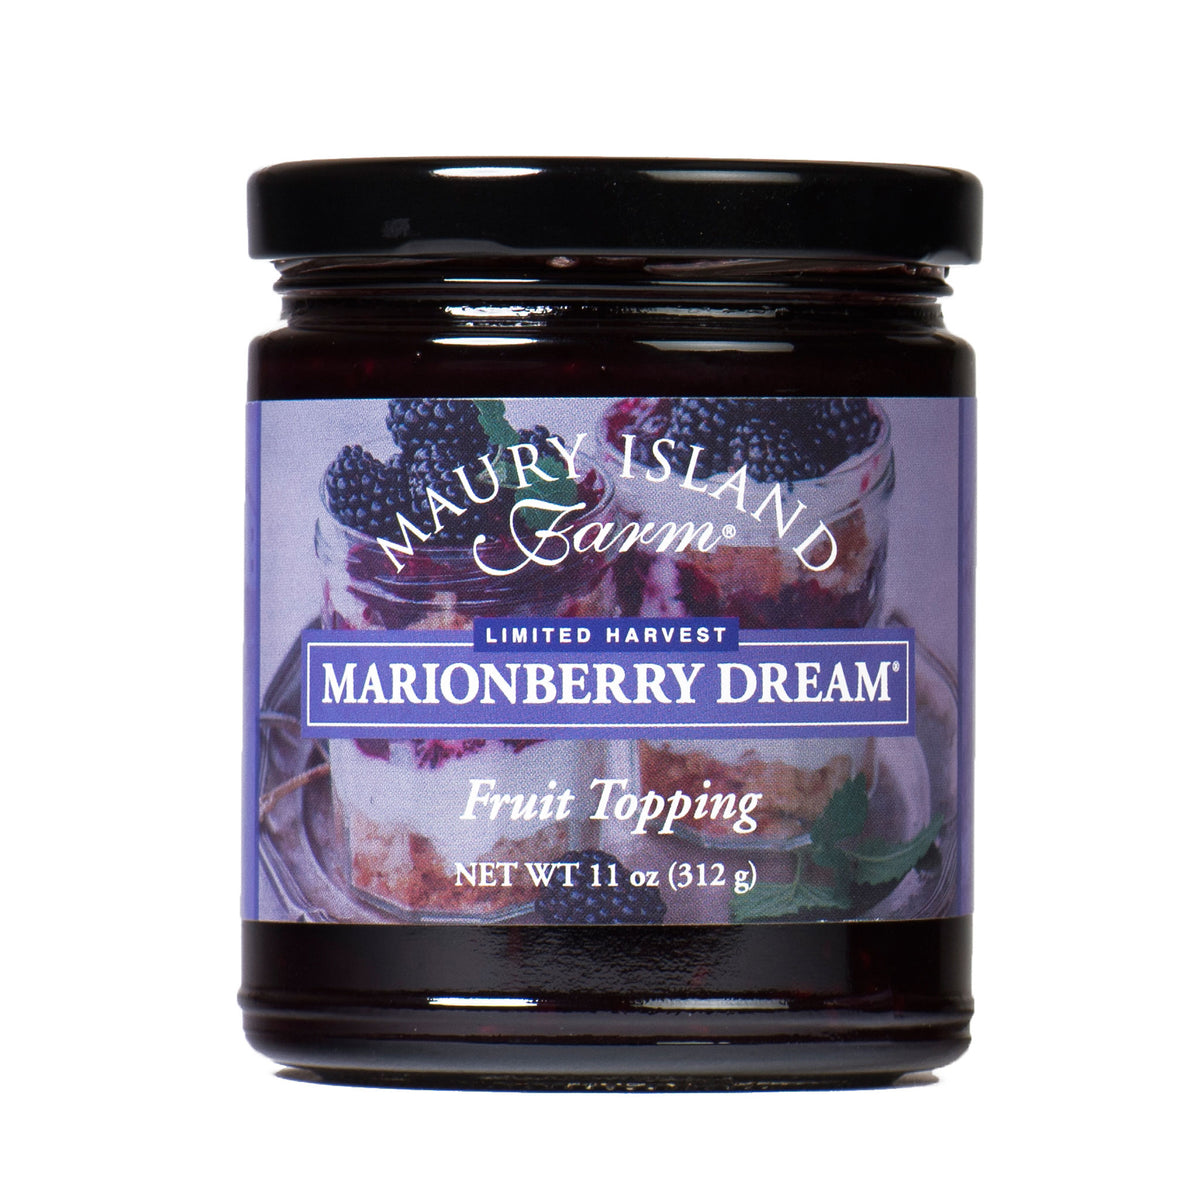 Maury Island Farm Limited Harvest Marionberry Dream Fruit Topping 11 Ounce Glass Jar